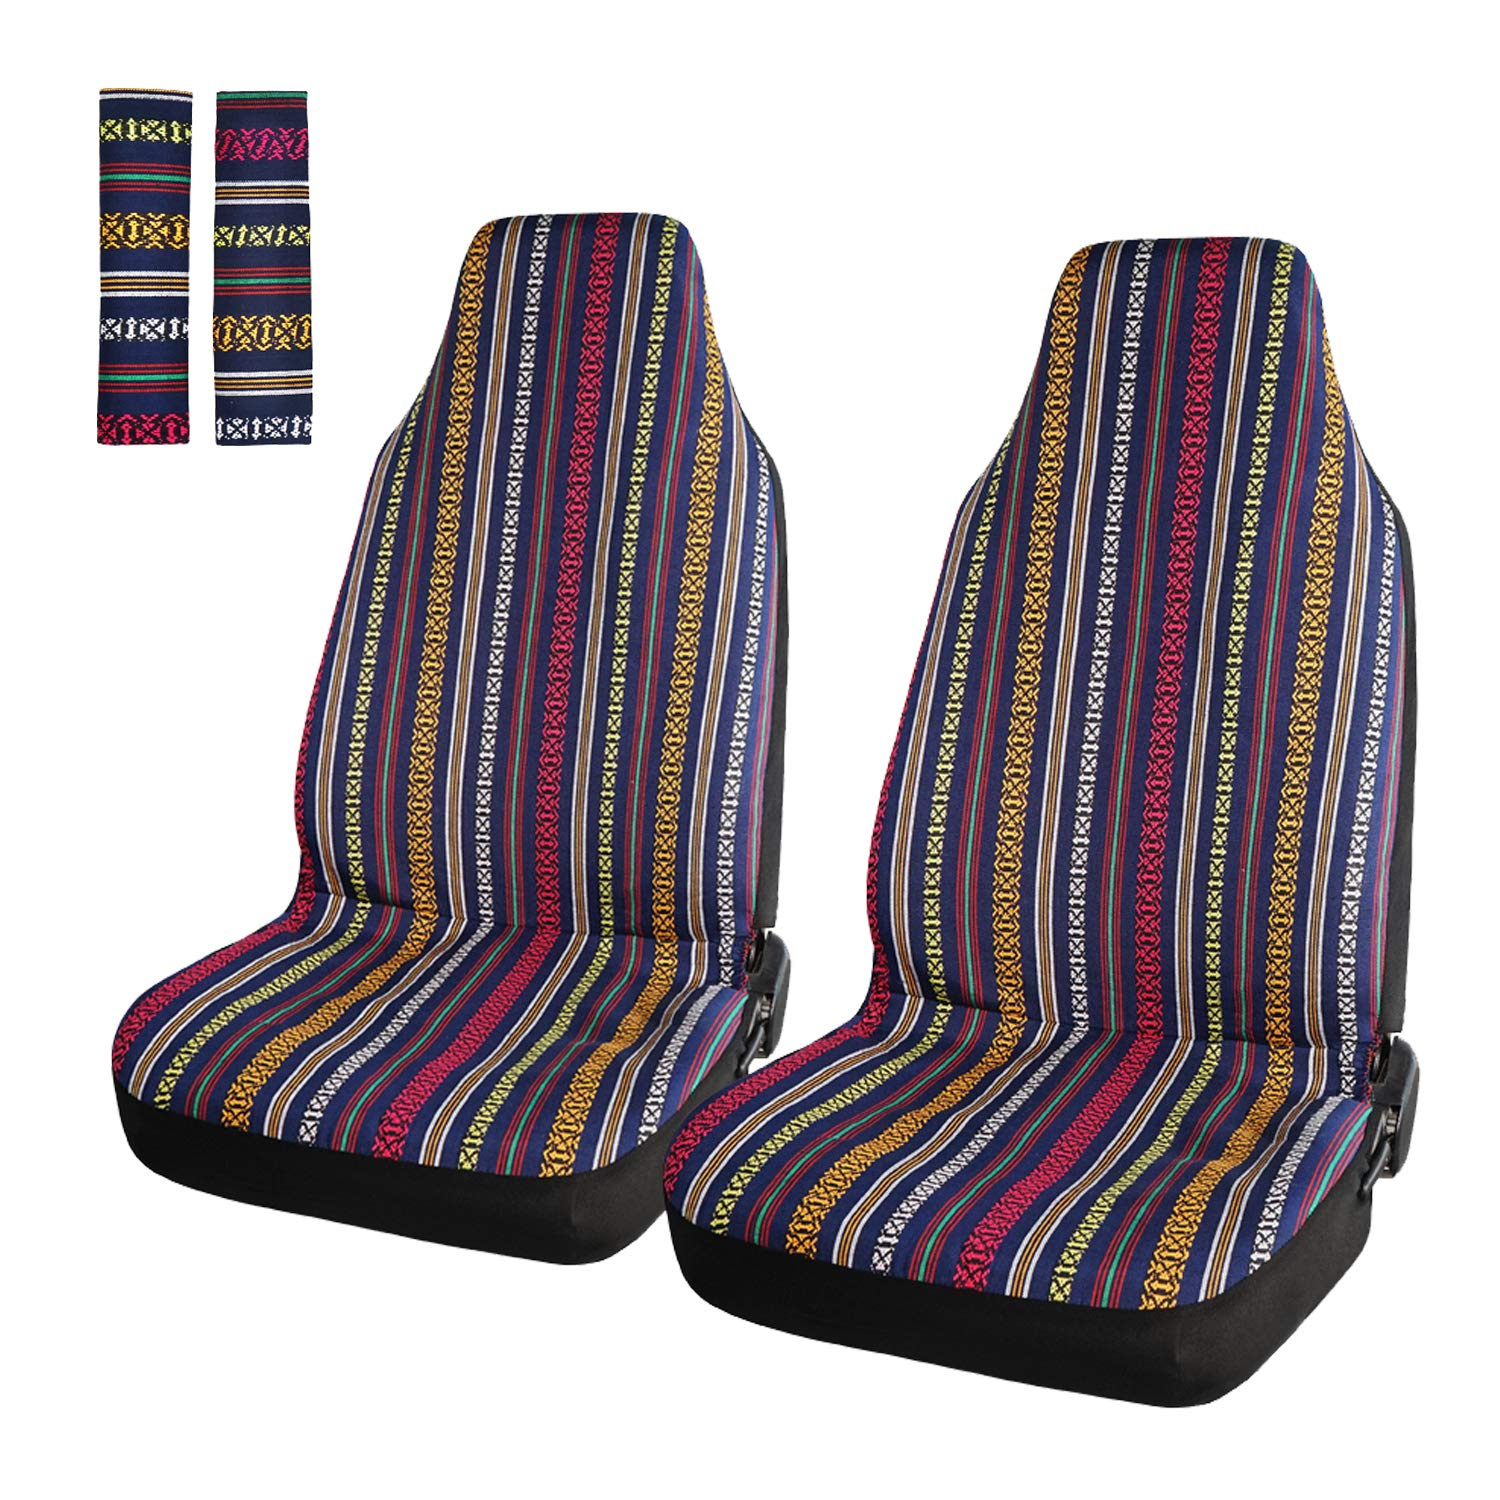 4Pcs Blue INFANZIA Baja Front Seat Covers Saddle Blanket Auto Seat Cover with Seat Belt Covers Fit Car Truck Van SUV